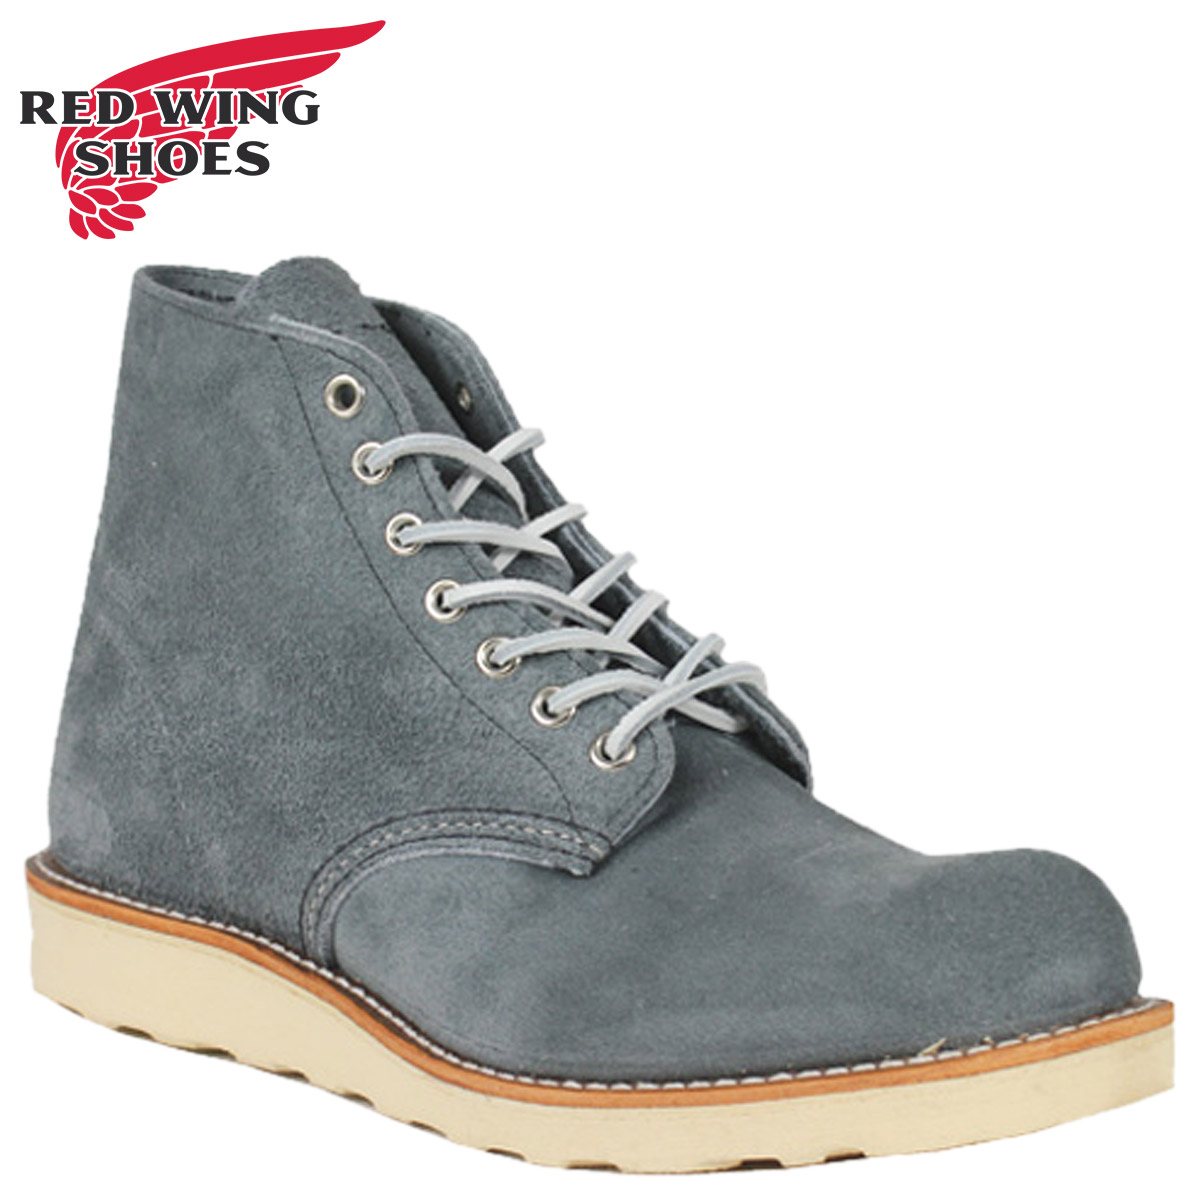 Redwing RED WING 6 inch rounds to boots 8144 6inch Round Toe Boots leather men's SLATE BLUE Made in USA Red Wing